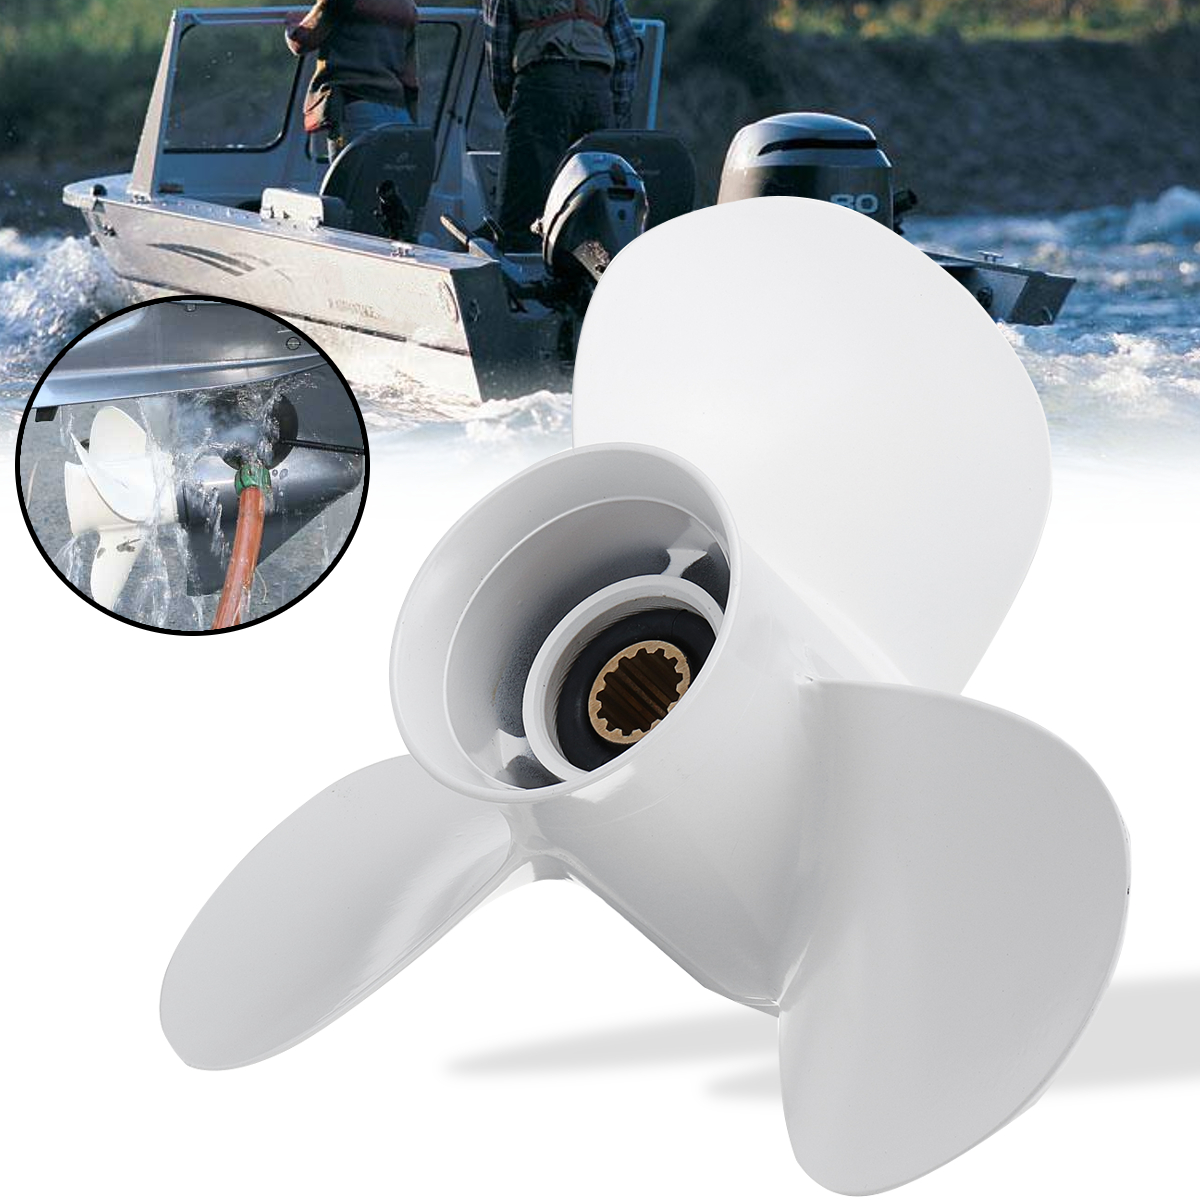 663-45958-01-EL For Yamaha 25-60HP 11 1/4 x 14 Boat Outboard Propeller Aluminum White Diameter 286mm 3 Blades 13 Spline Tooths